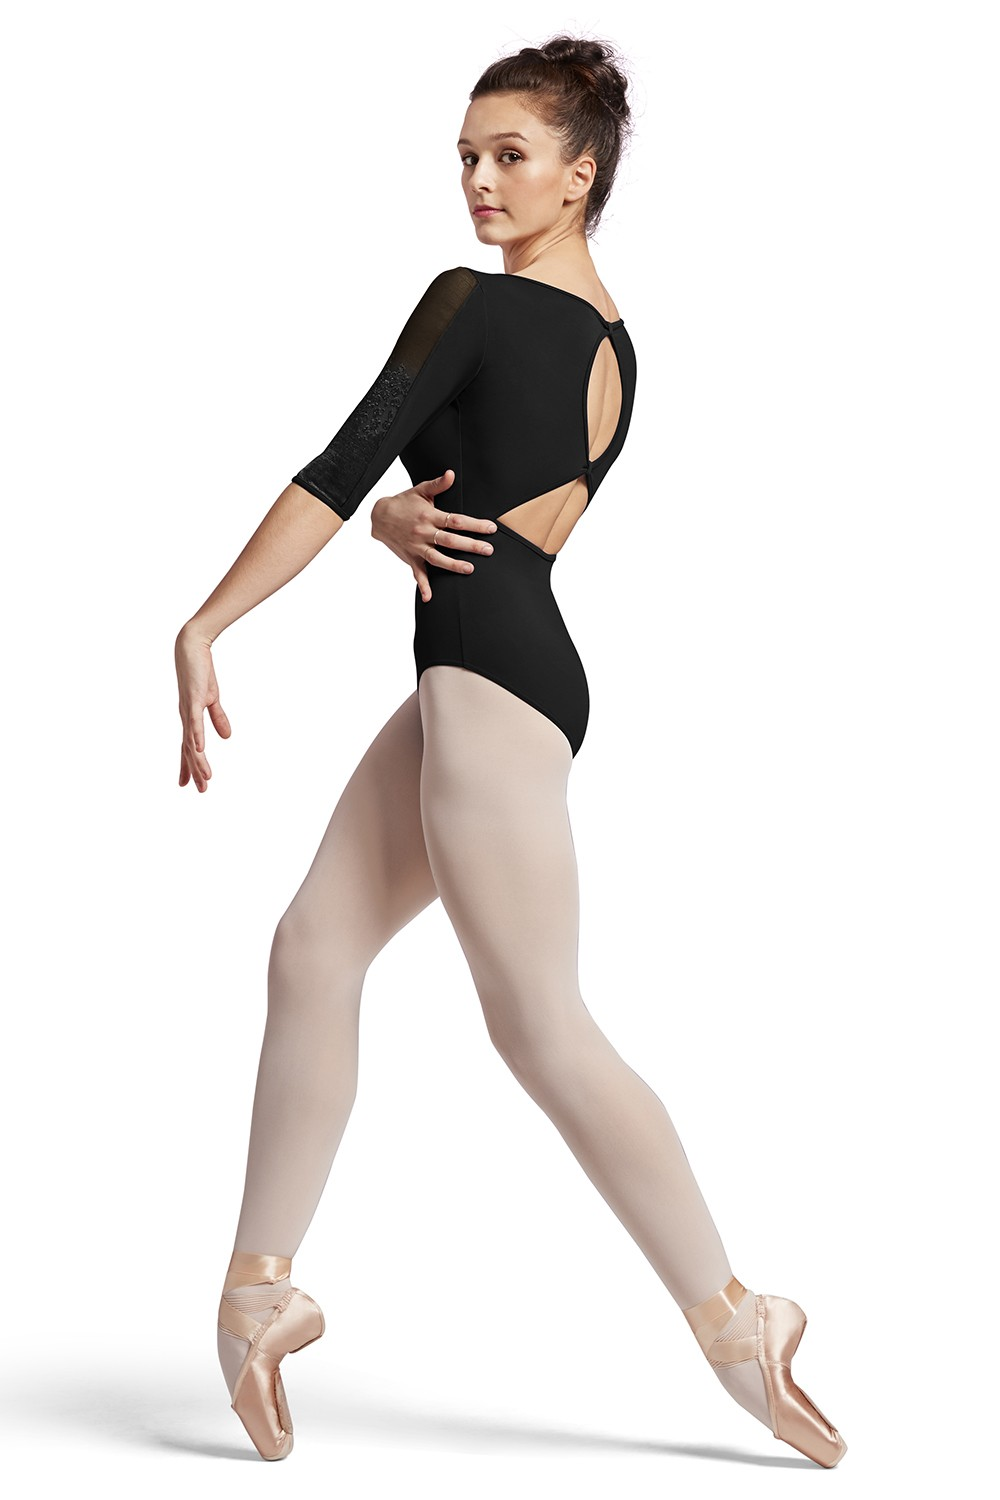 Opelly Women's Dance Leotards